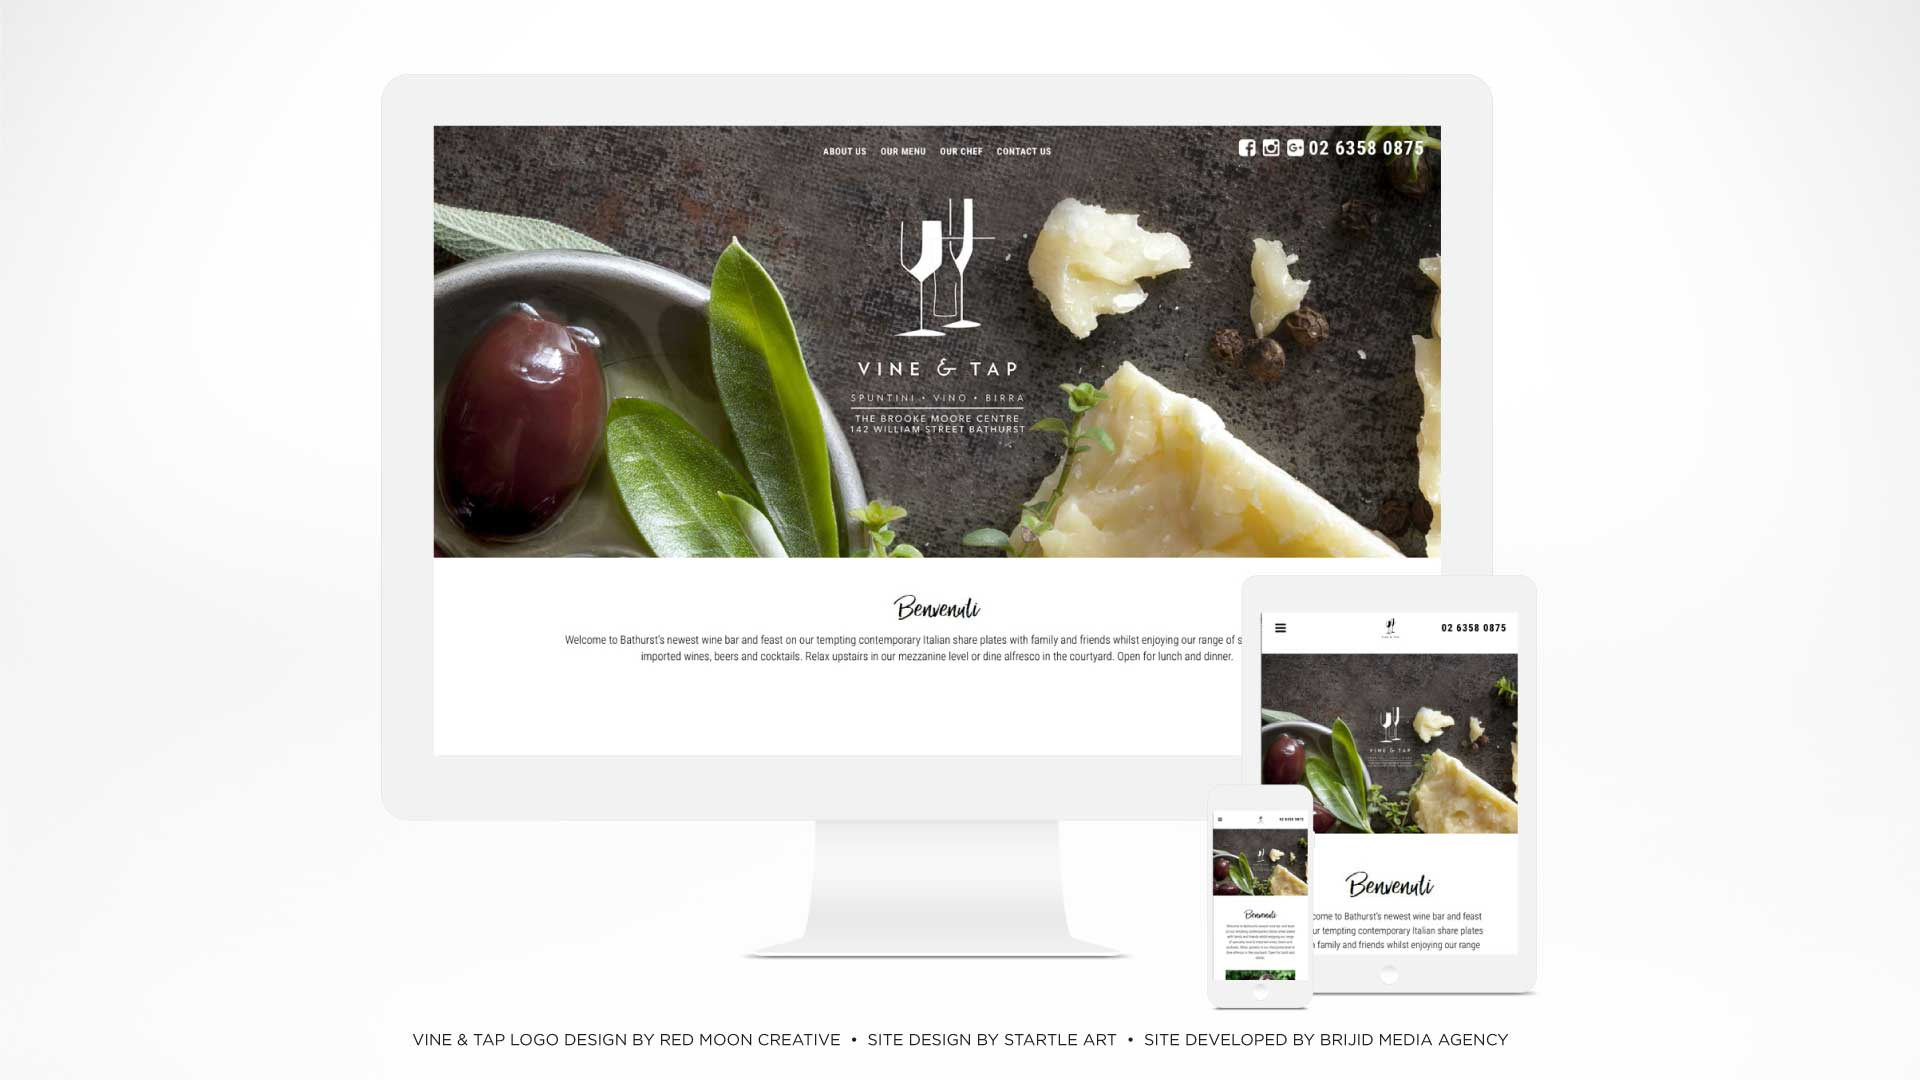 Portfolio - Vine & Tap Bathurst Website | StartleArt Graphic Design